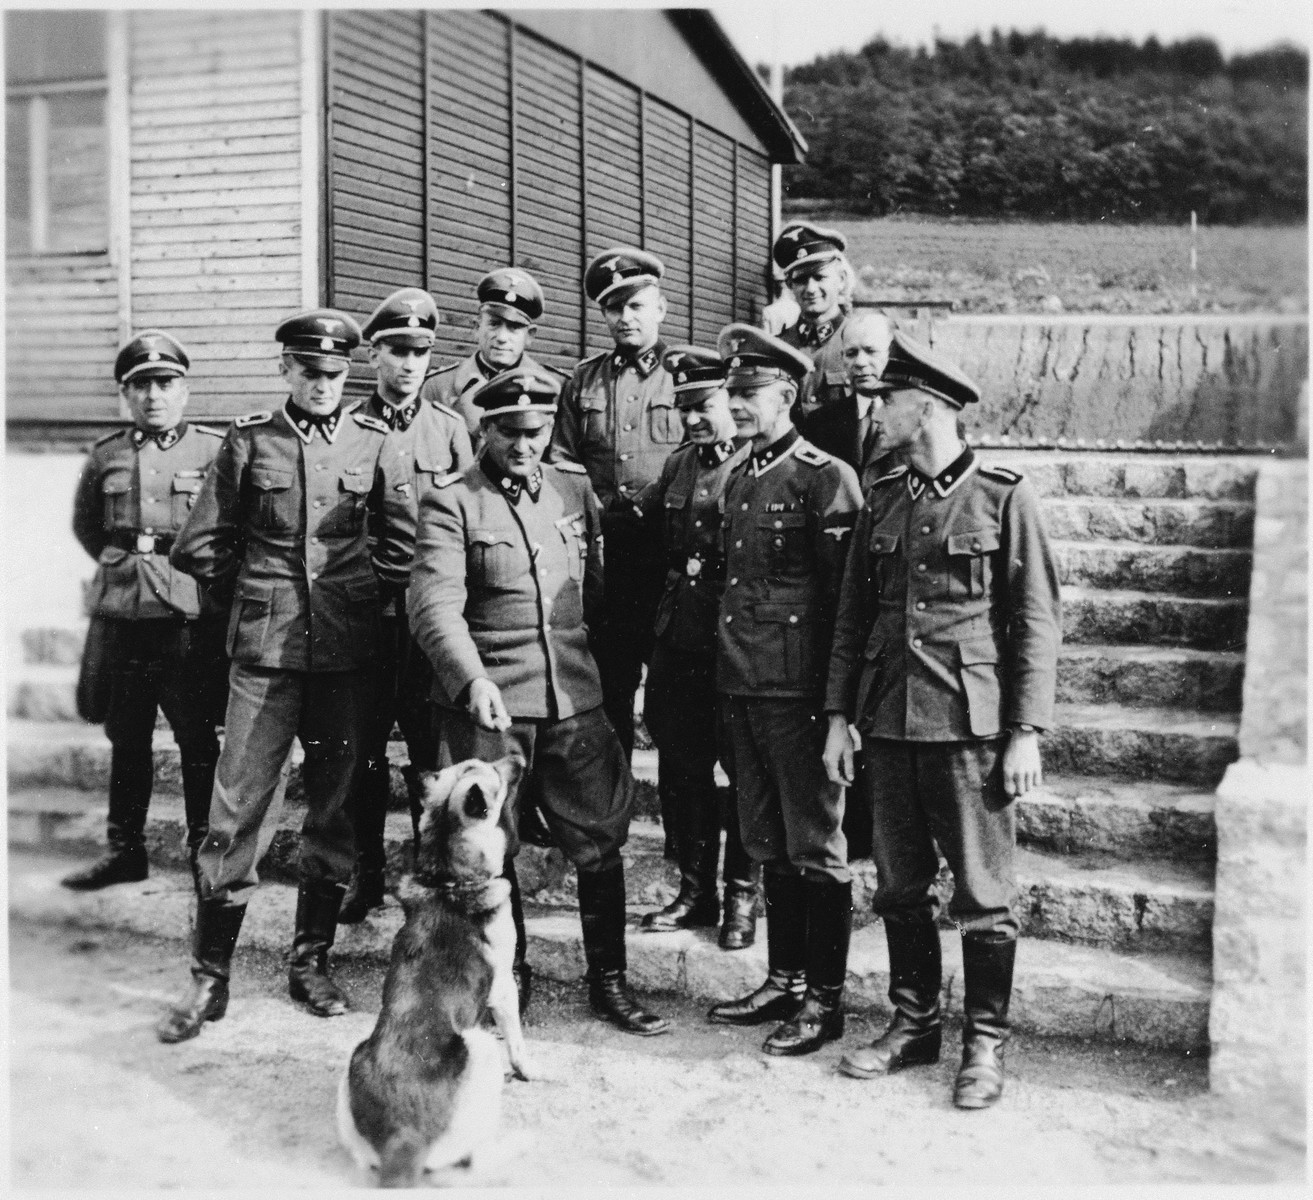 SS officers in Gross-Rosen bid farewell to SS platoon commander Hafer (who was responsible for building).  Among those pictured are the commandant, Athur Roedl (with the dog), Michl (behind him), Anton Thumann (far right) and probably Dr. Friedrich Entress (third from the left).